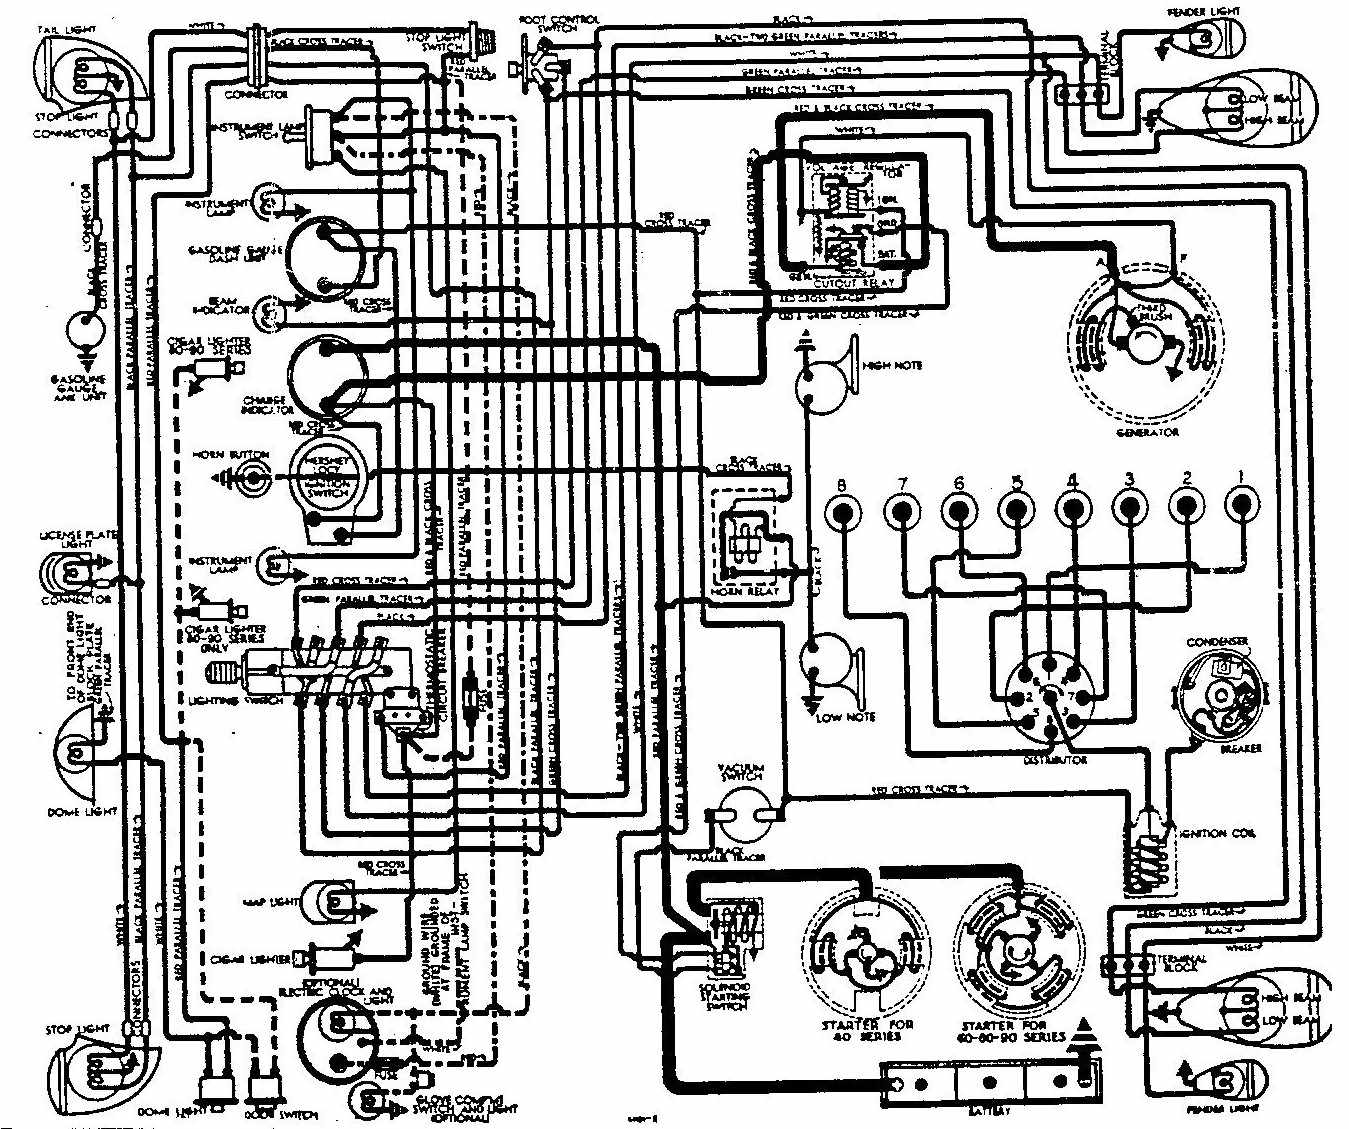 hight resolution of 1938 buick wiring diagram wiring diagram1938 buick wiring diagram